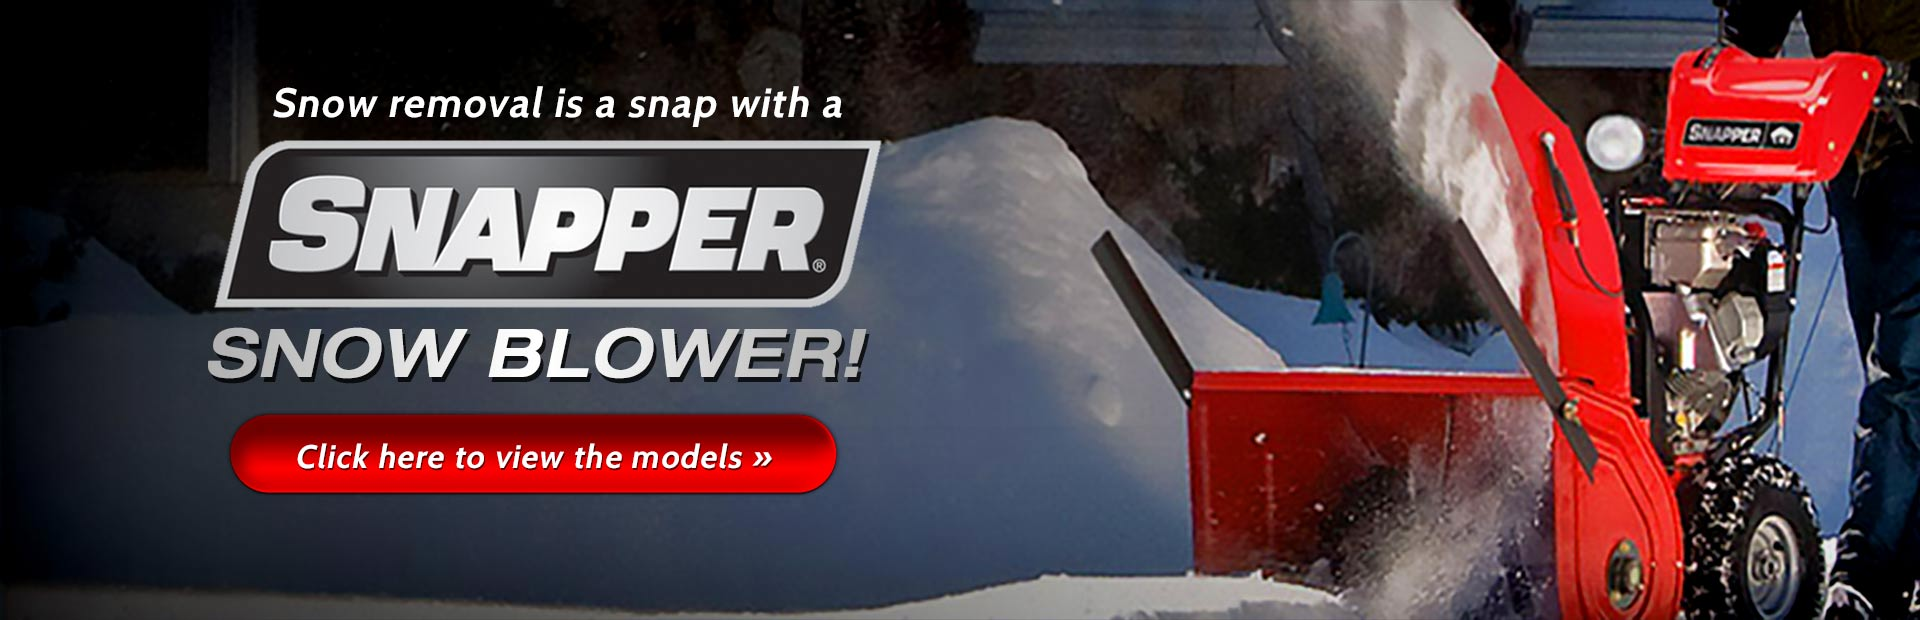 Click here to view Snapper snow blowers.